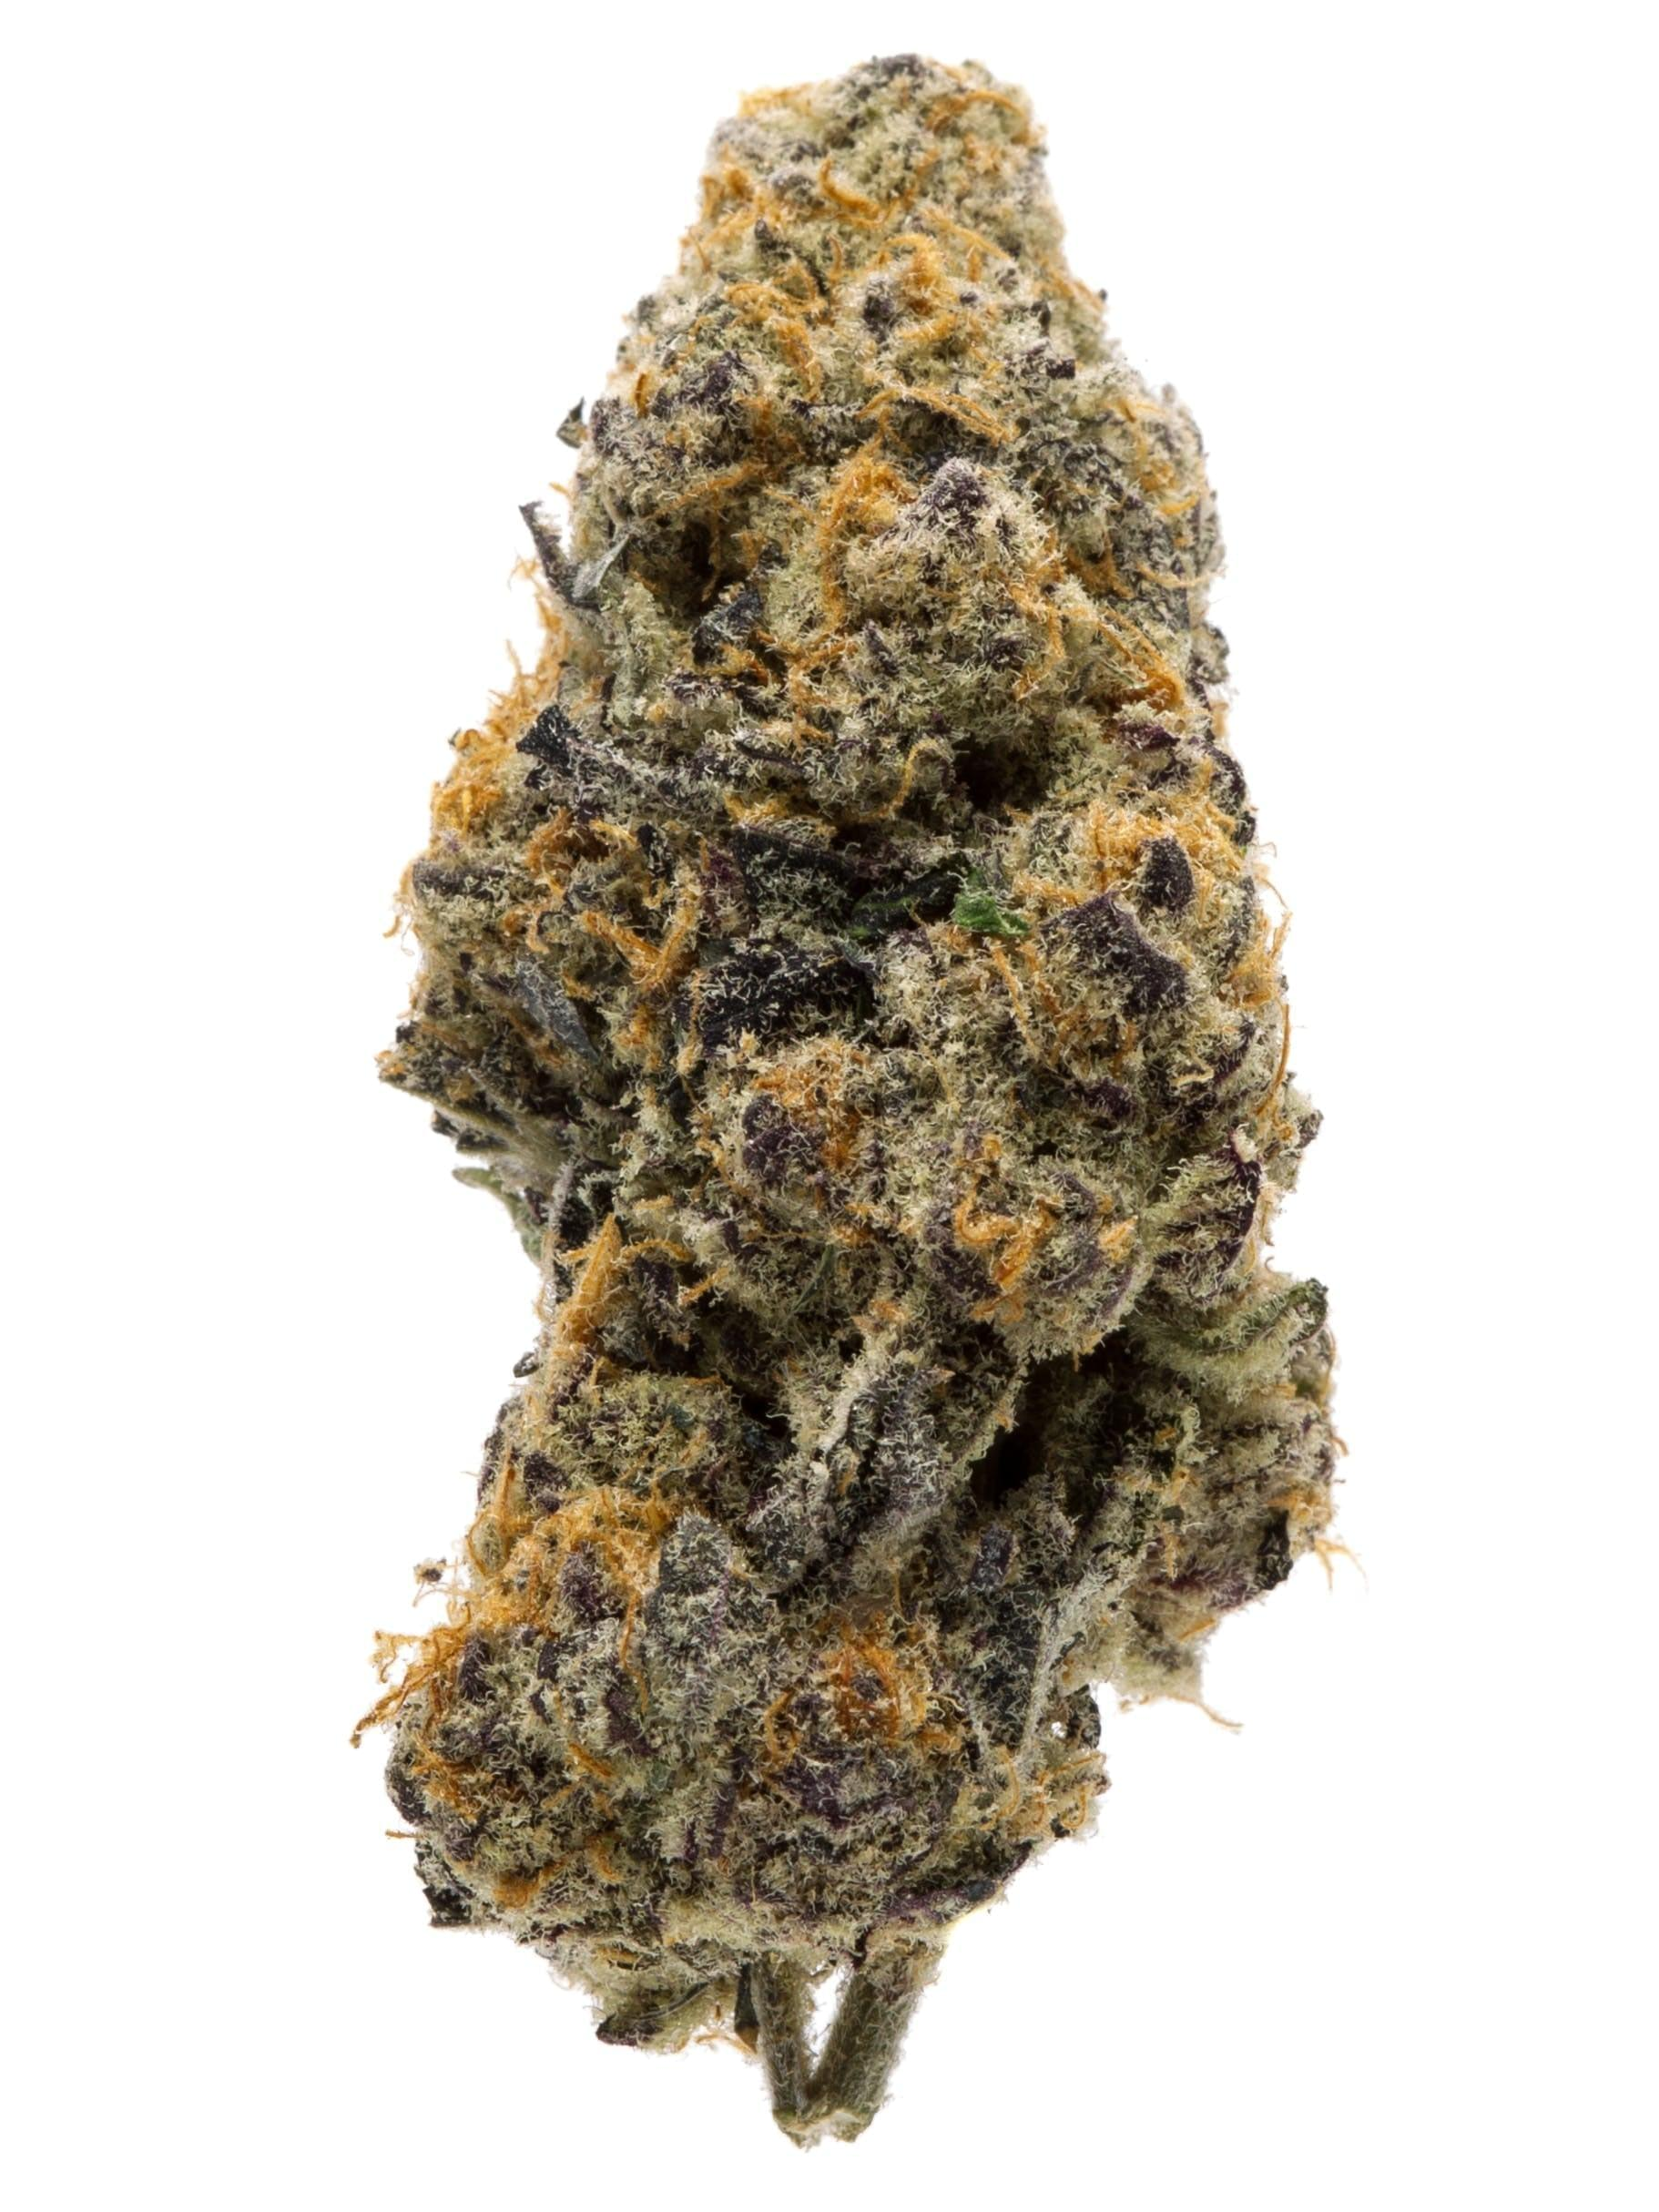 What is Grandaddy Purple Marijuana Strain? Is It Beneficial To Any Extent? – Only Zaza